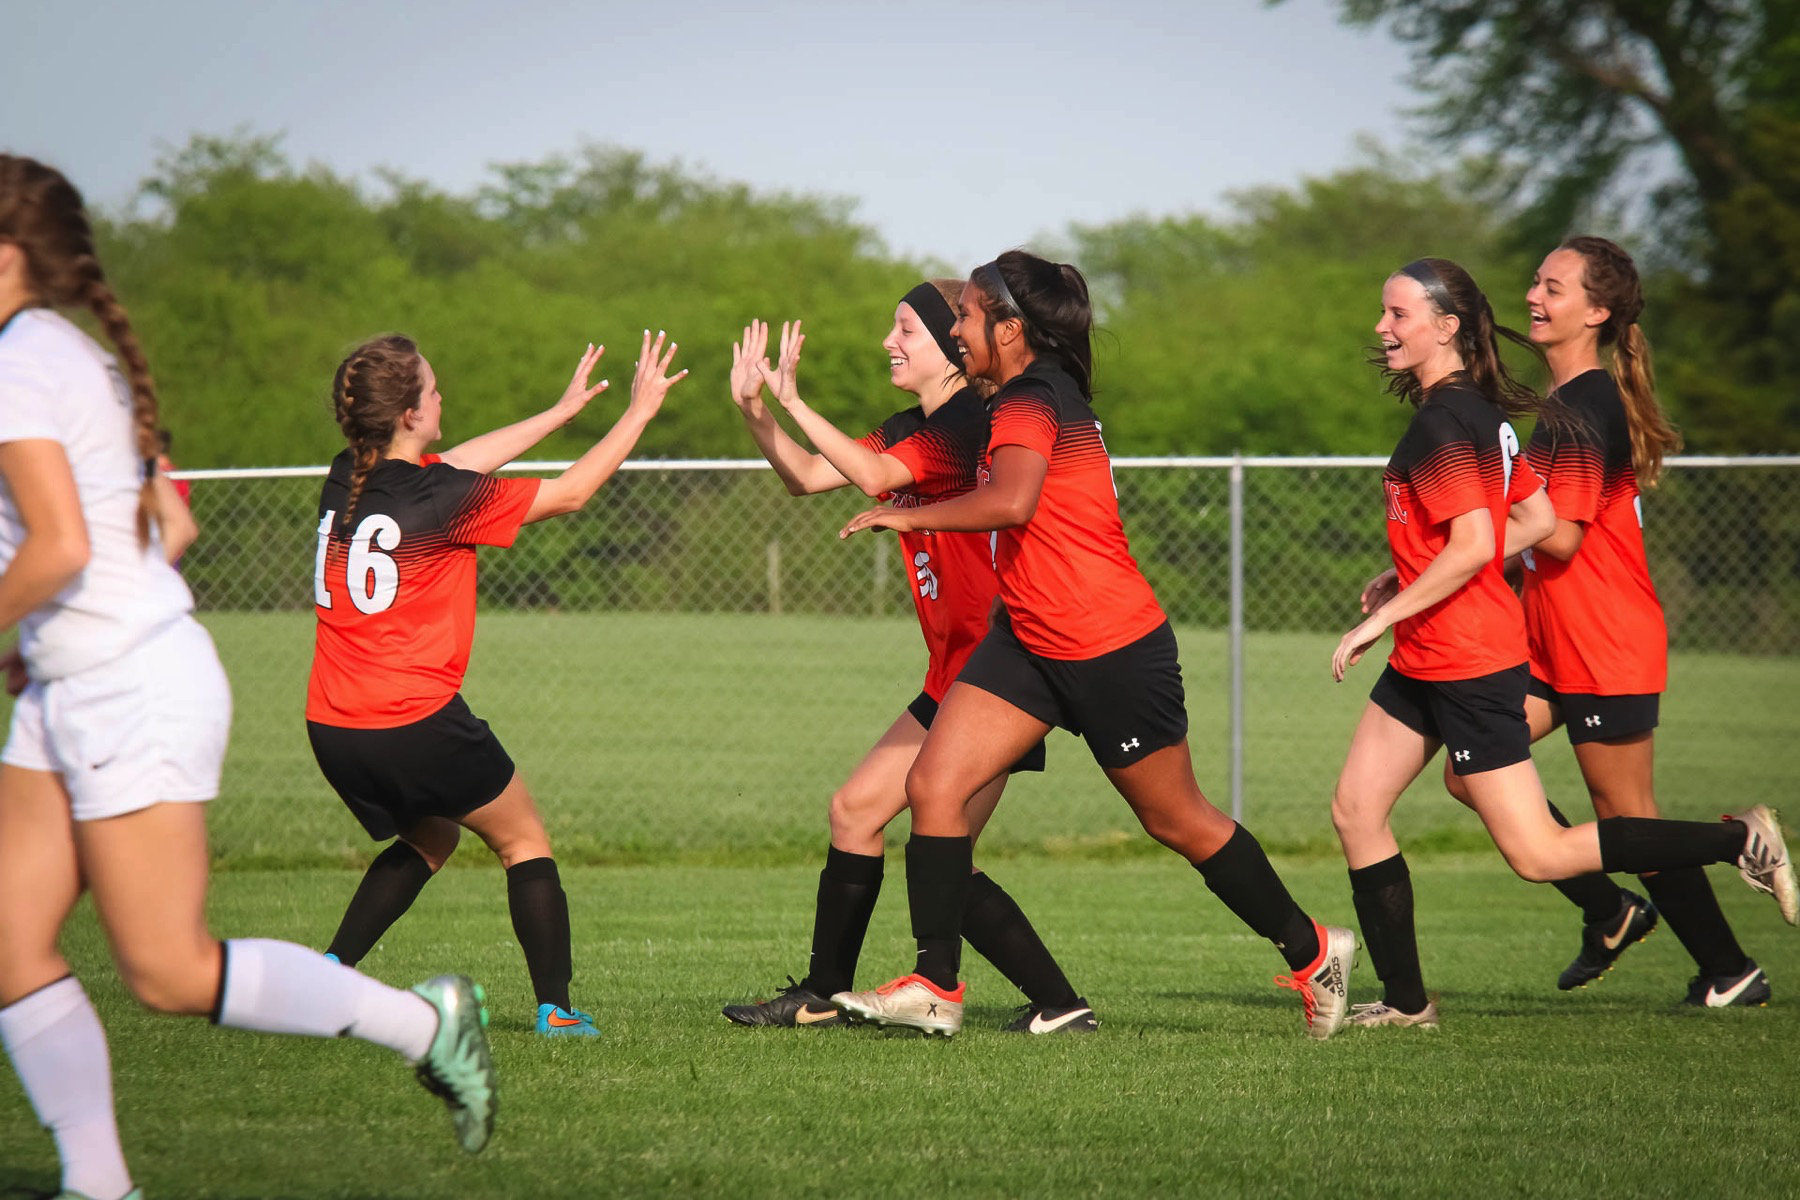 Photos:  Varsity Soccer Vs Willard